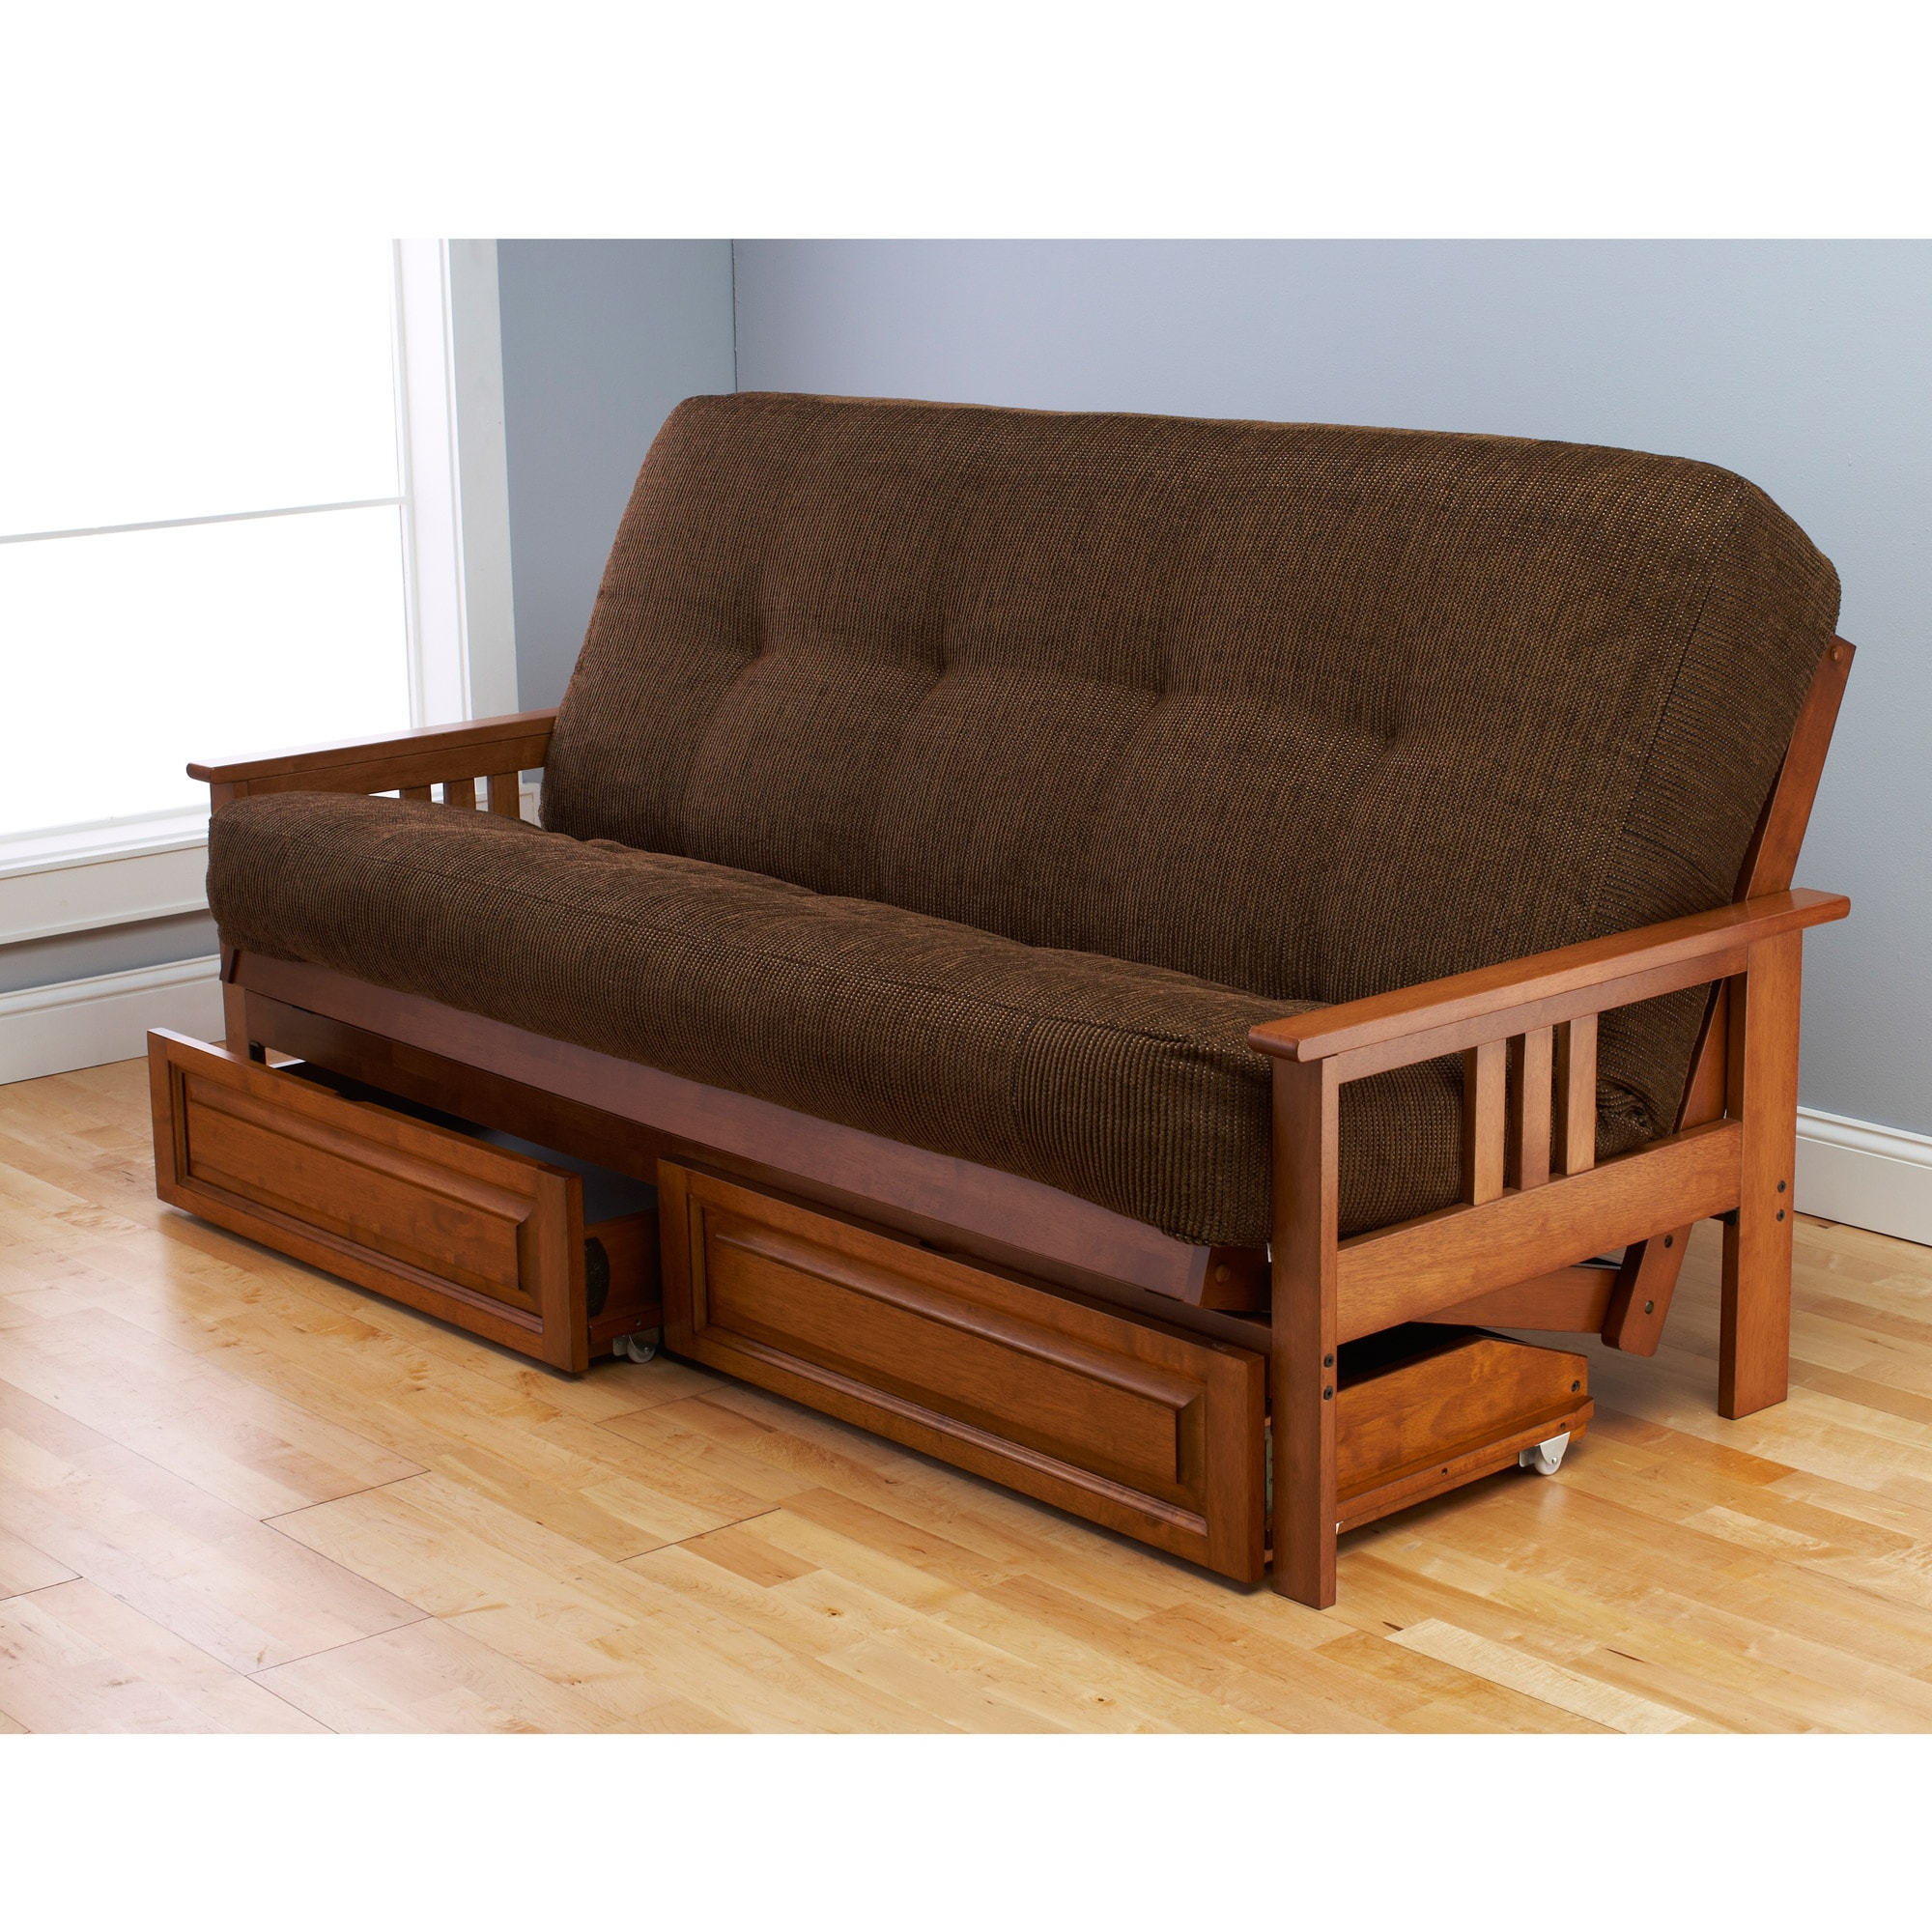 Somette Beli Mont Multi Flex Honey Oak Full Size Futon